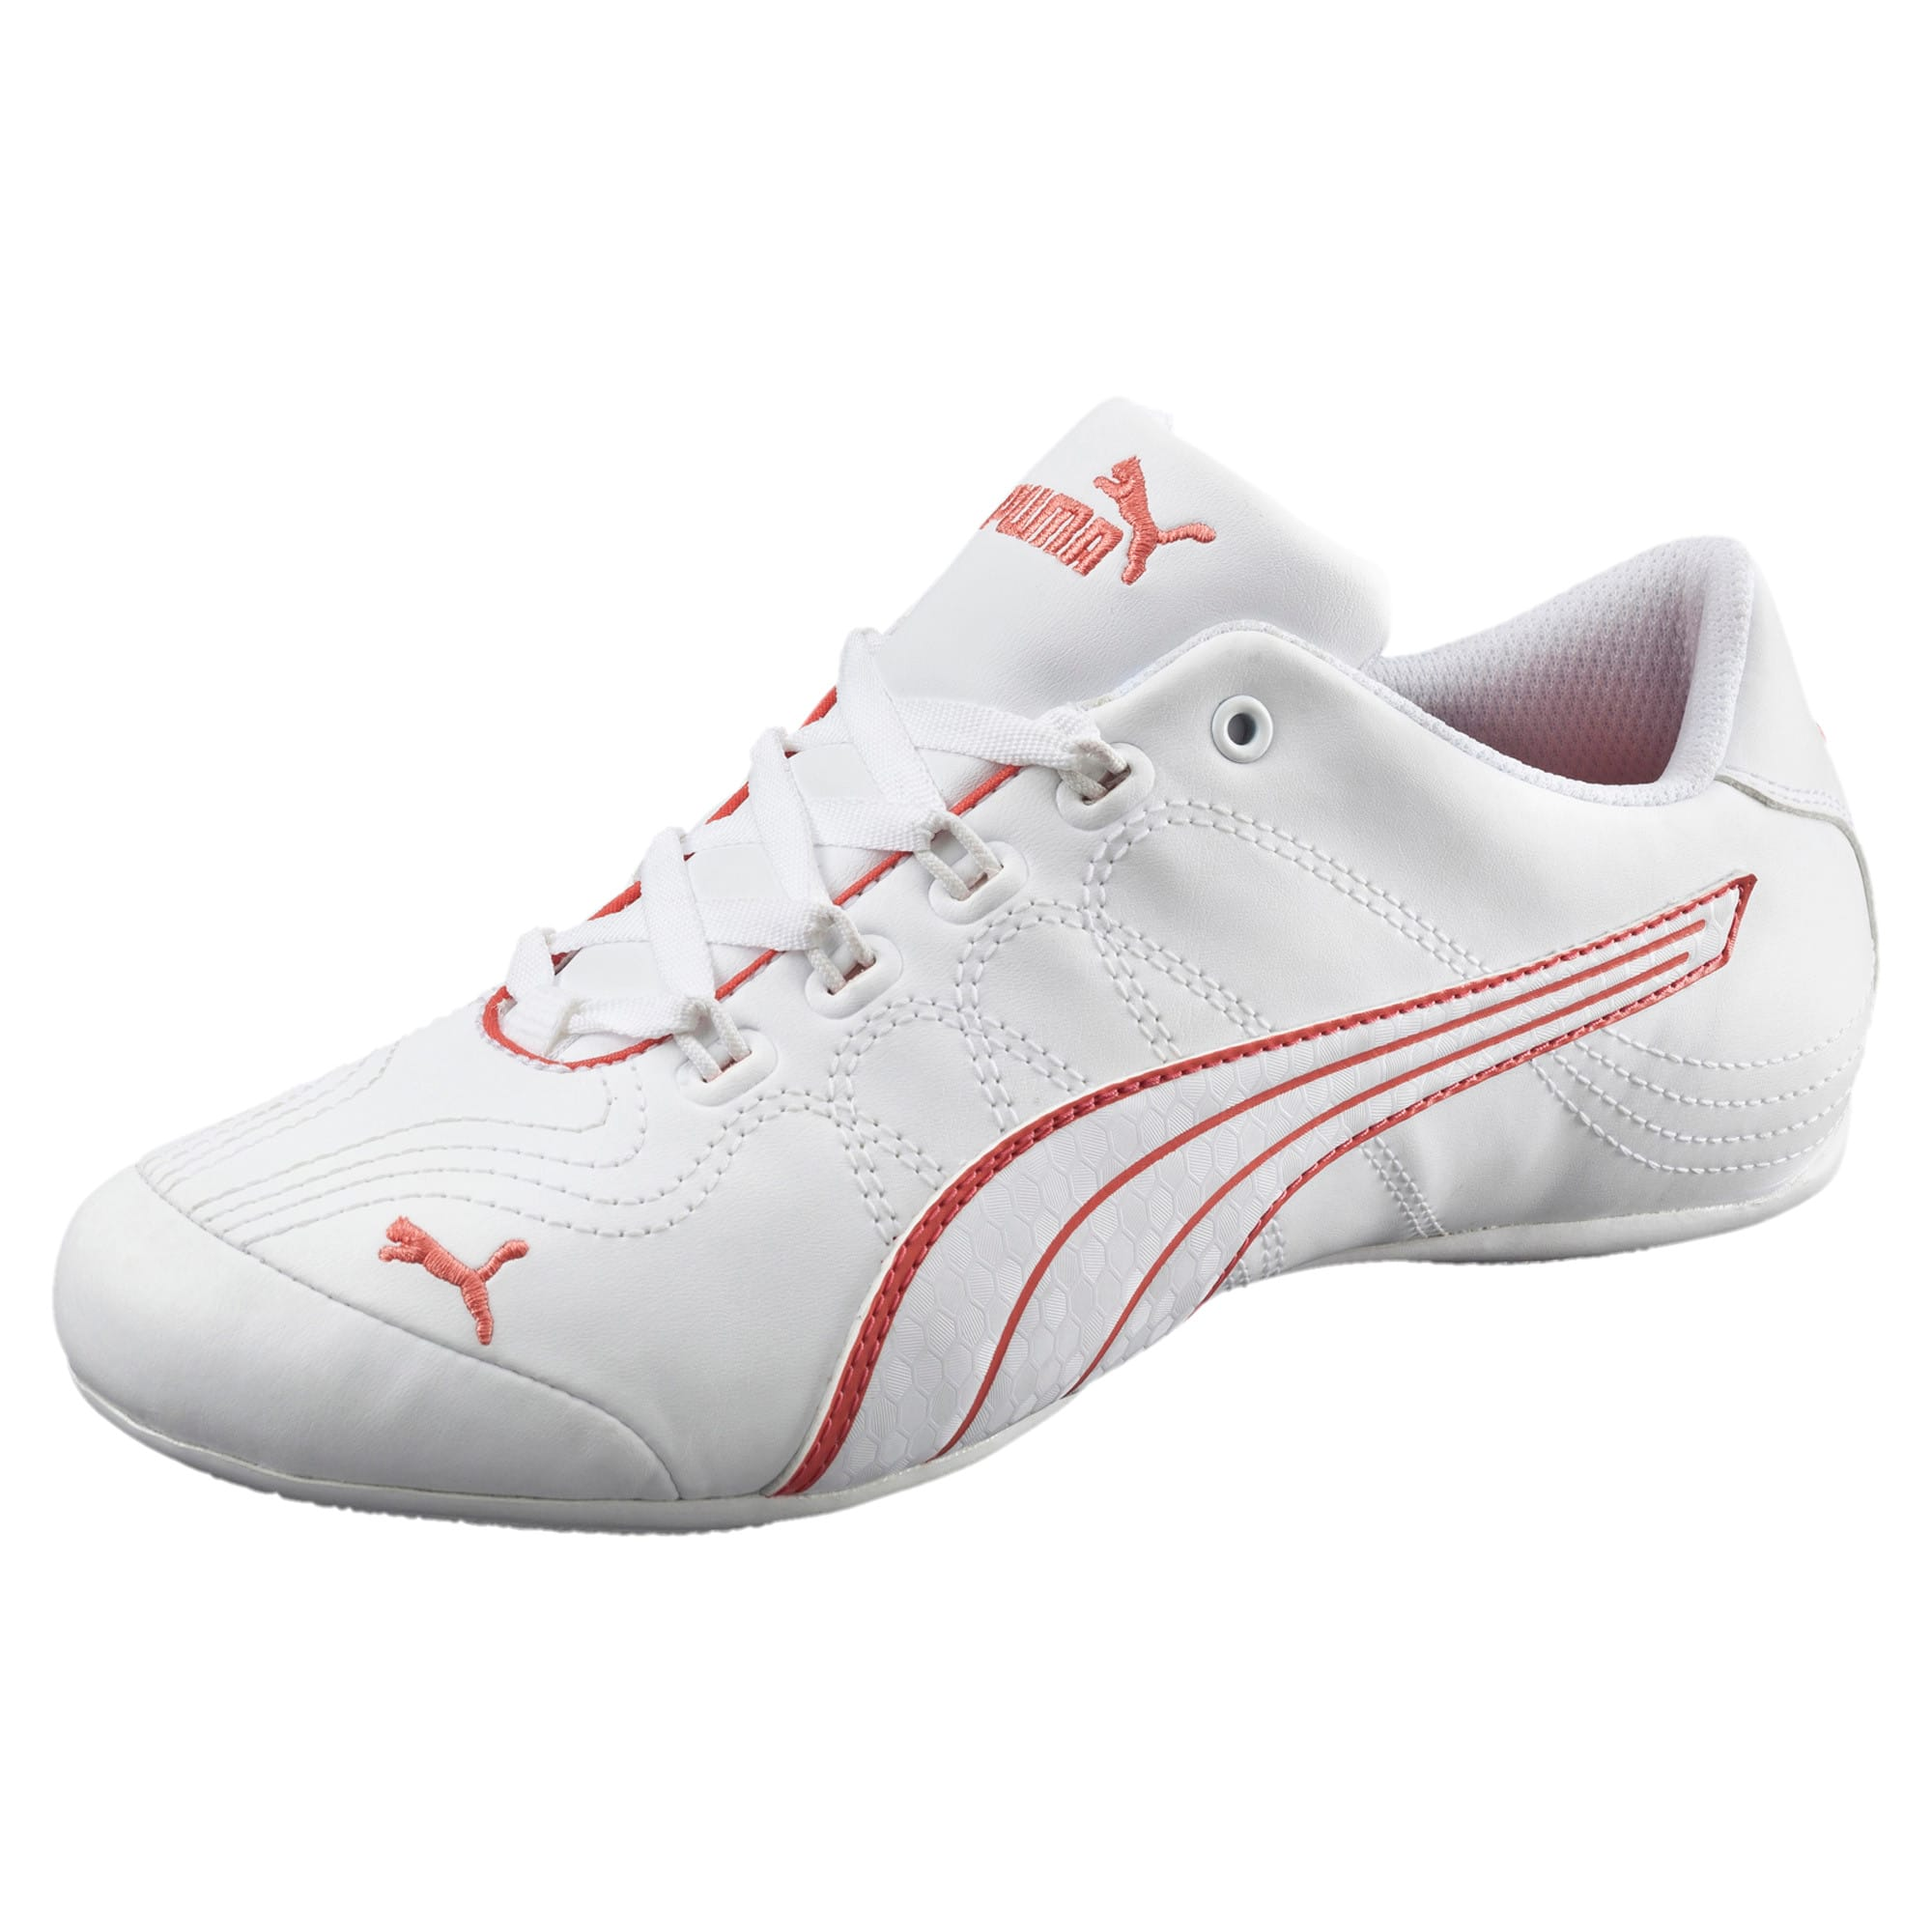 Thumbnail 1 of Soleil v2 Comfort Fun Women's Sneakers, Puma White-Porcelain Rose, medium